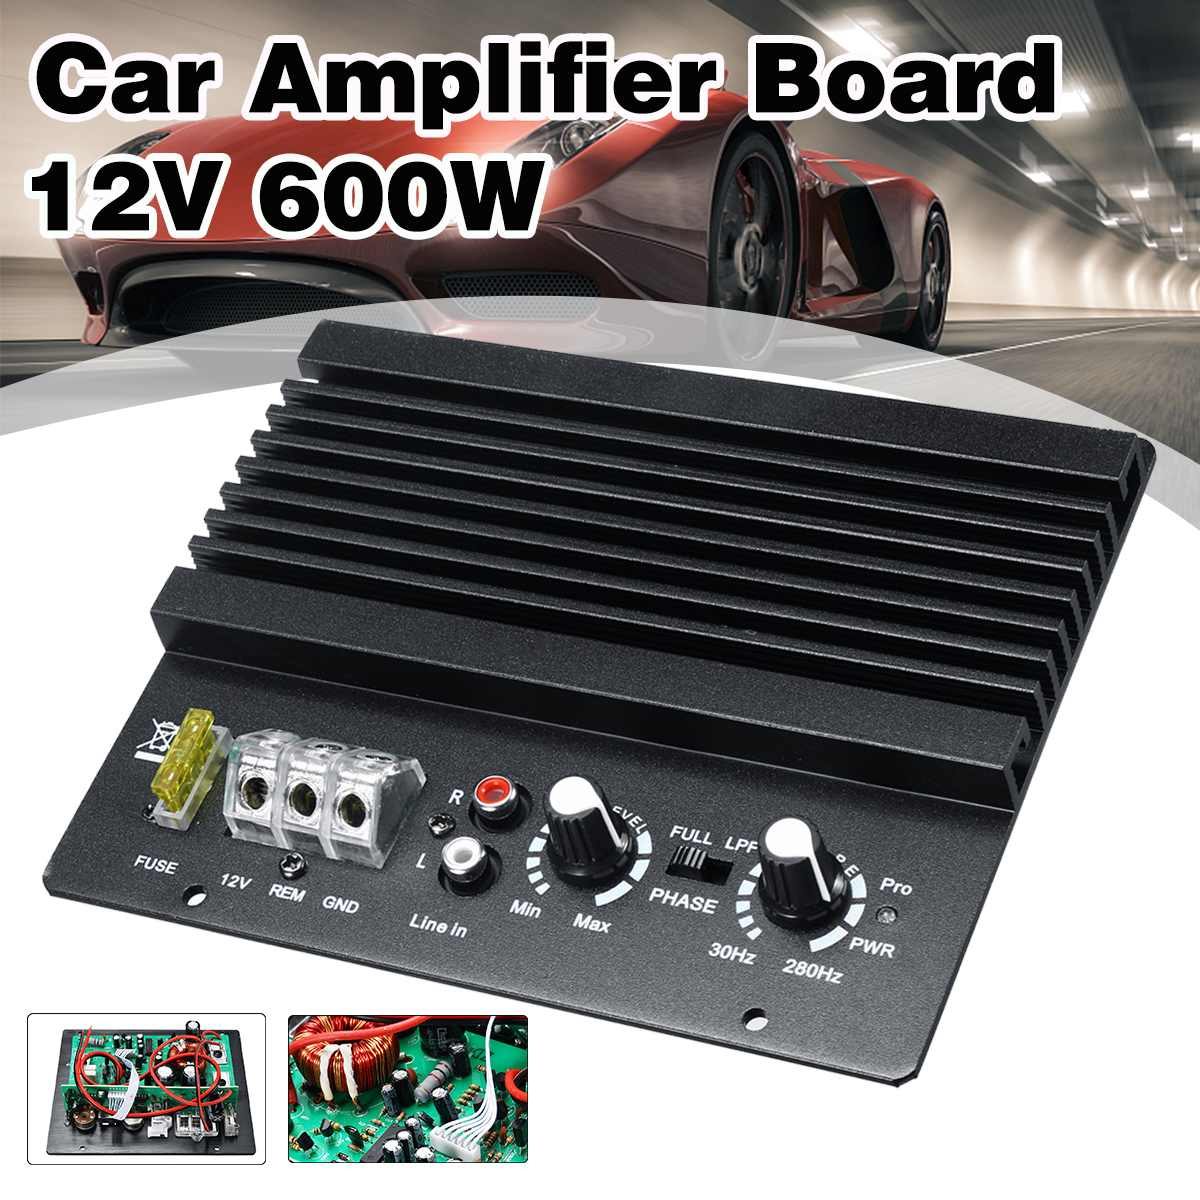 12V 600W Mono Car Audio Power Amplifier Powerful Bass Subwoofers Amp Car Amplifier Board Car Speaker Aux Subwoofer Amplifiers12V 600W Mono Car Audio Power Amplifier Powerful Bass Subwoofers Amp Car Amplifier Board Car Speaker Aux Subwoofer Amplifiers